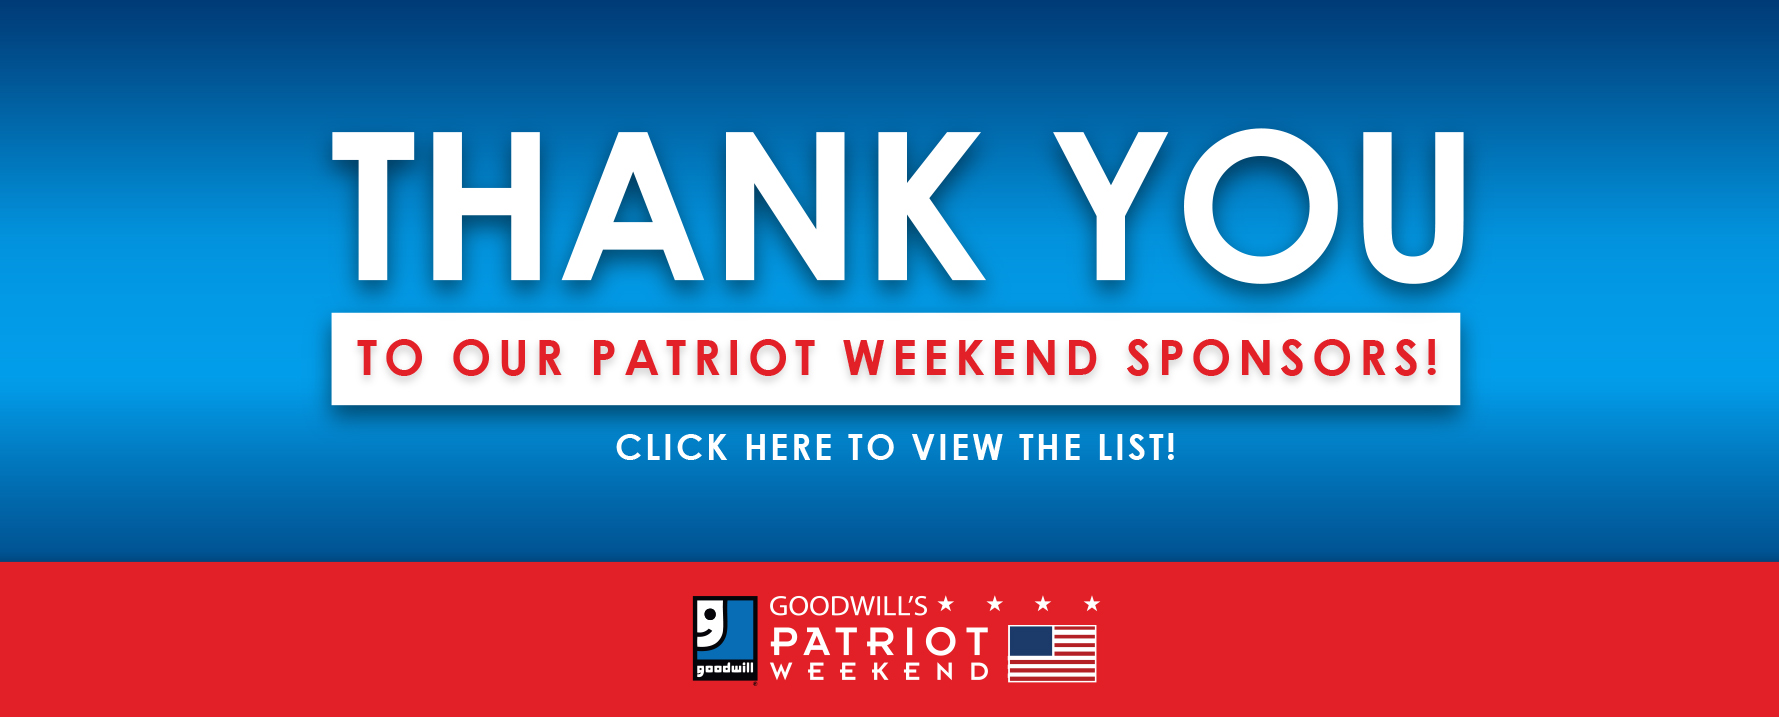 Thank You Patriot Weekend Sponsors